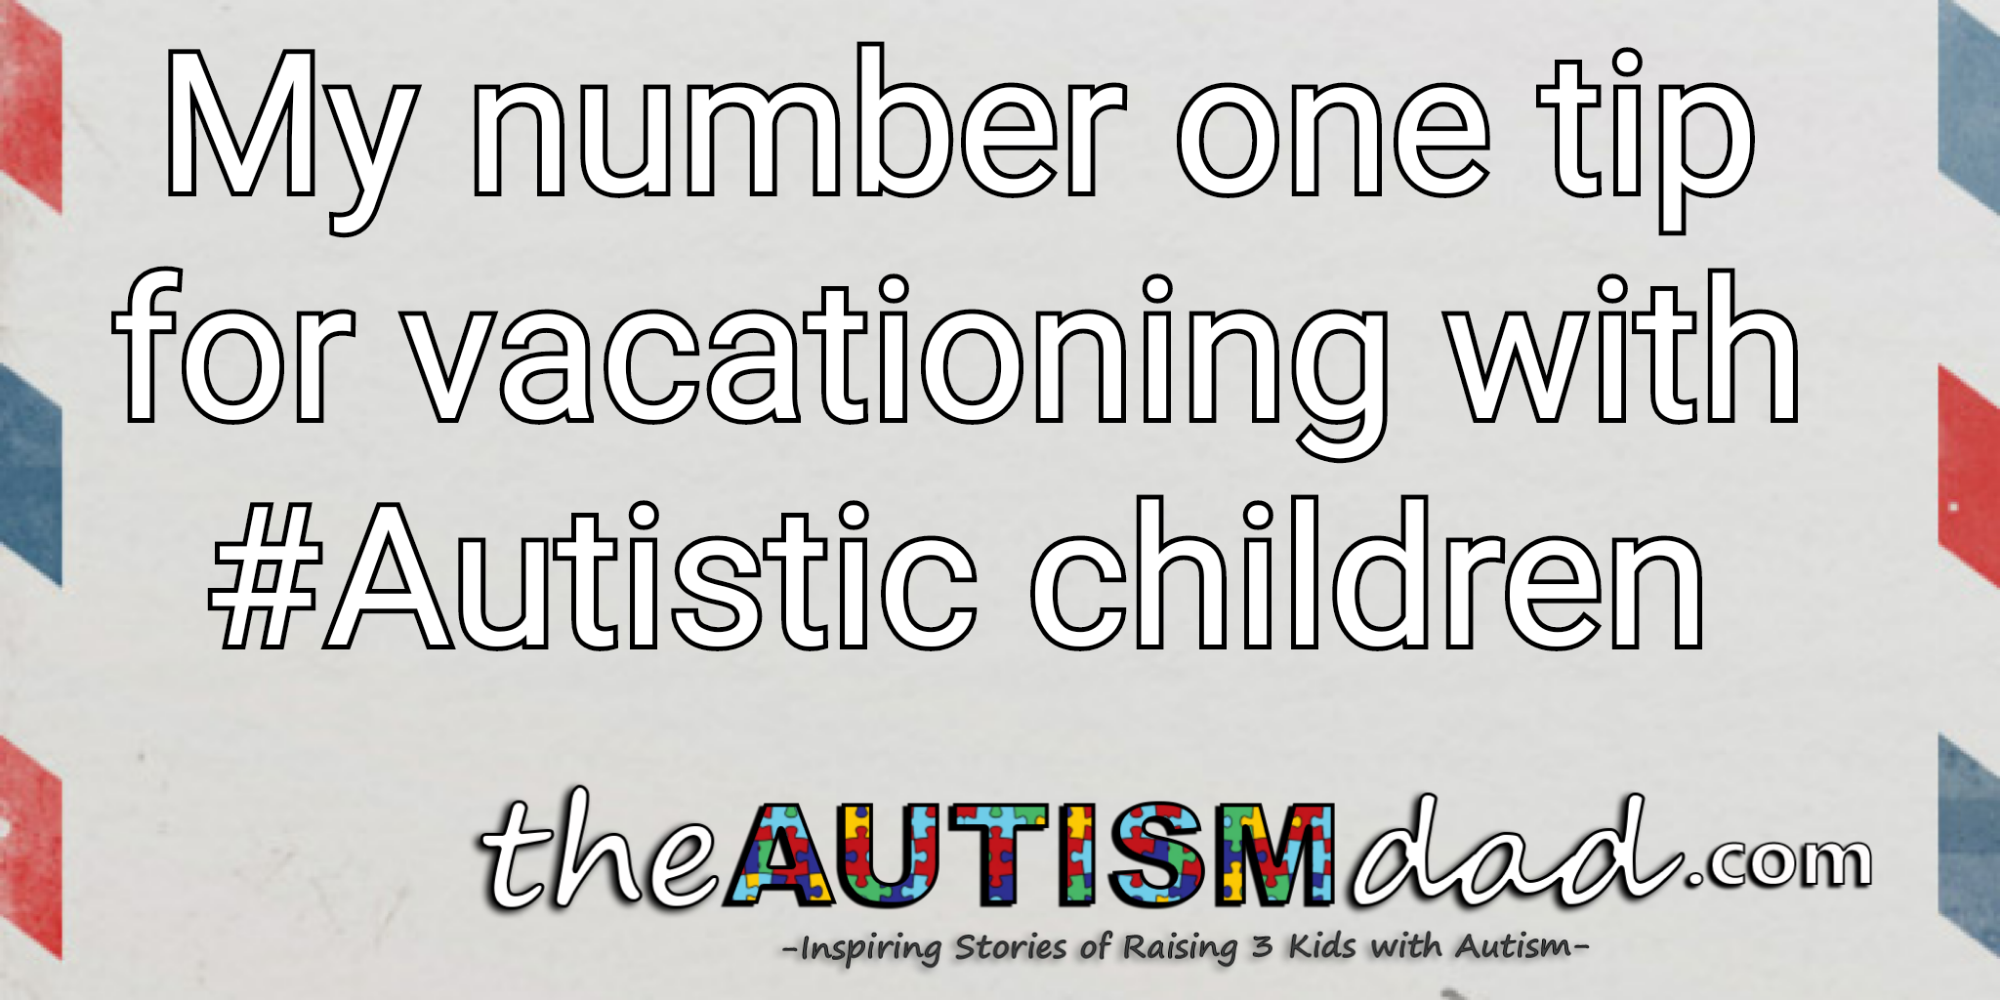 My number one tip for vacationing with #Autistic children